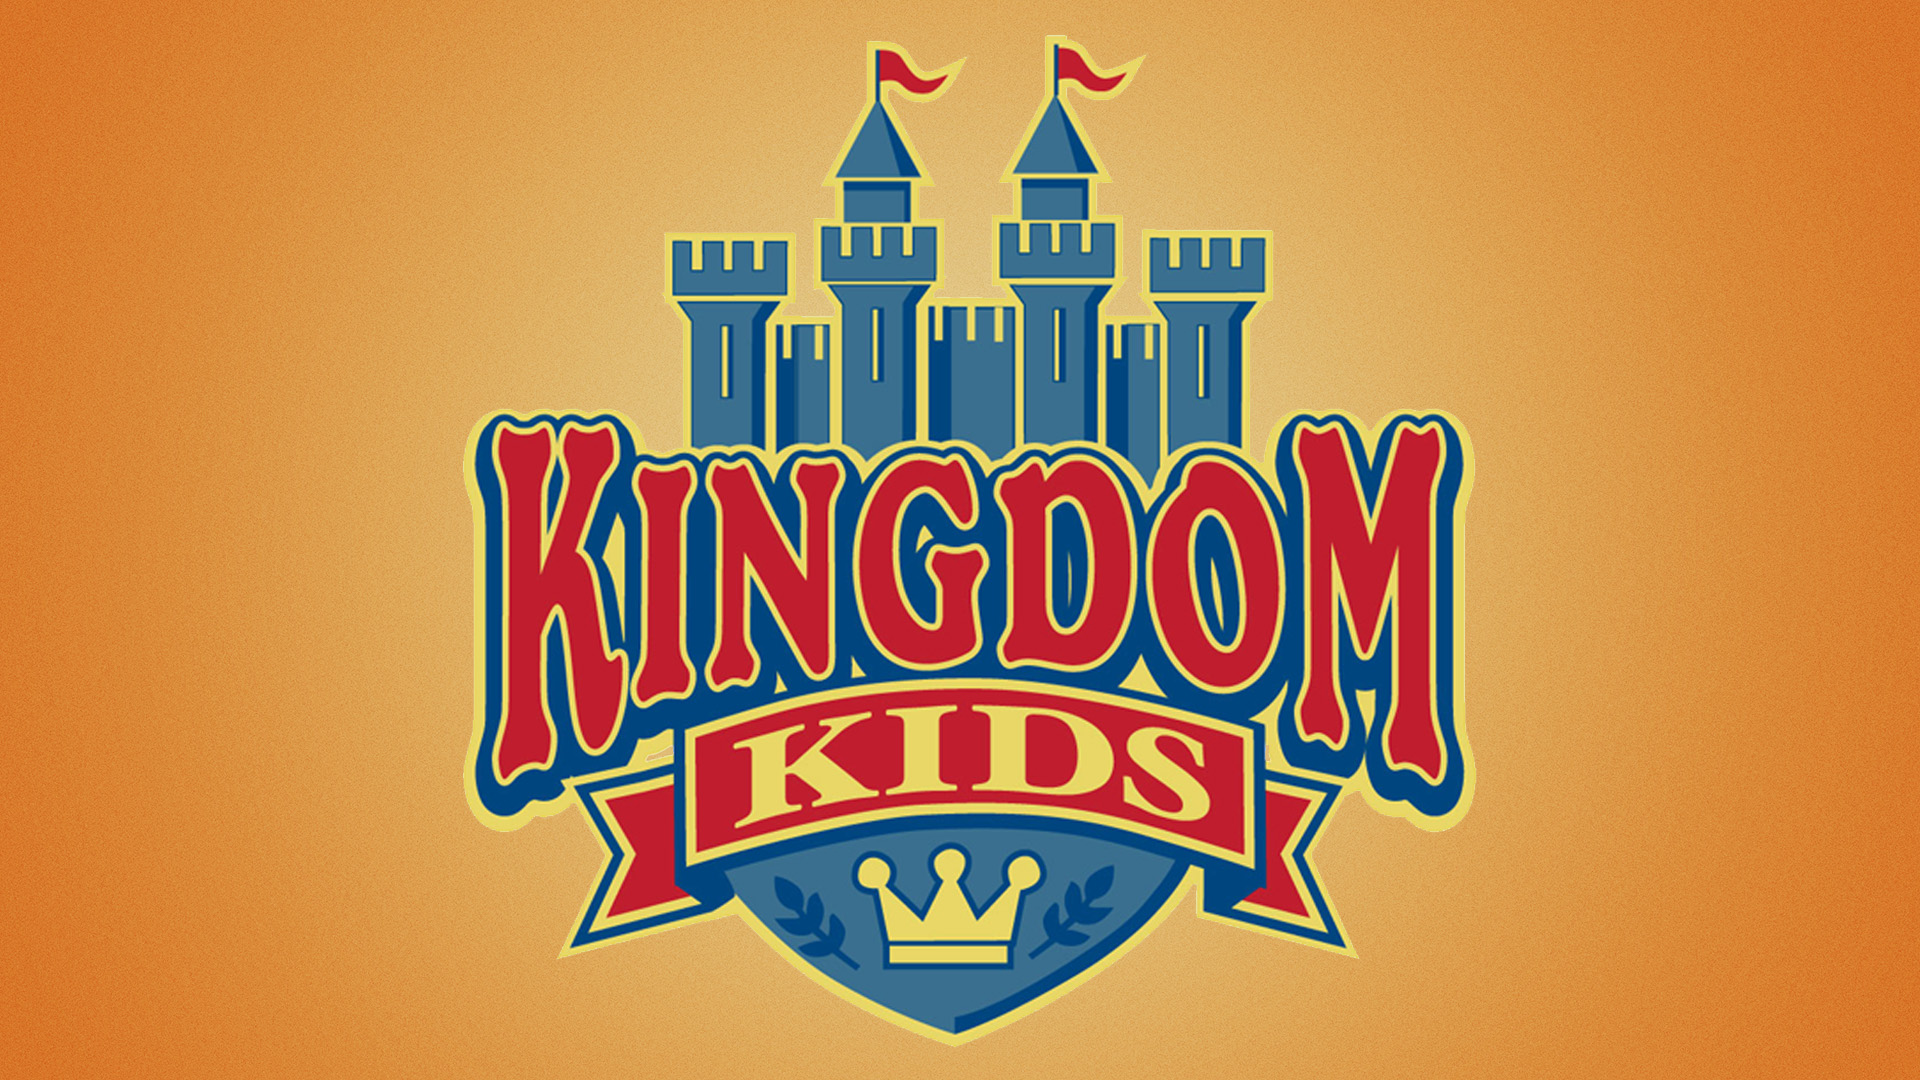 Click here for more information on Kingdom Kids